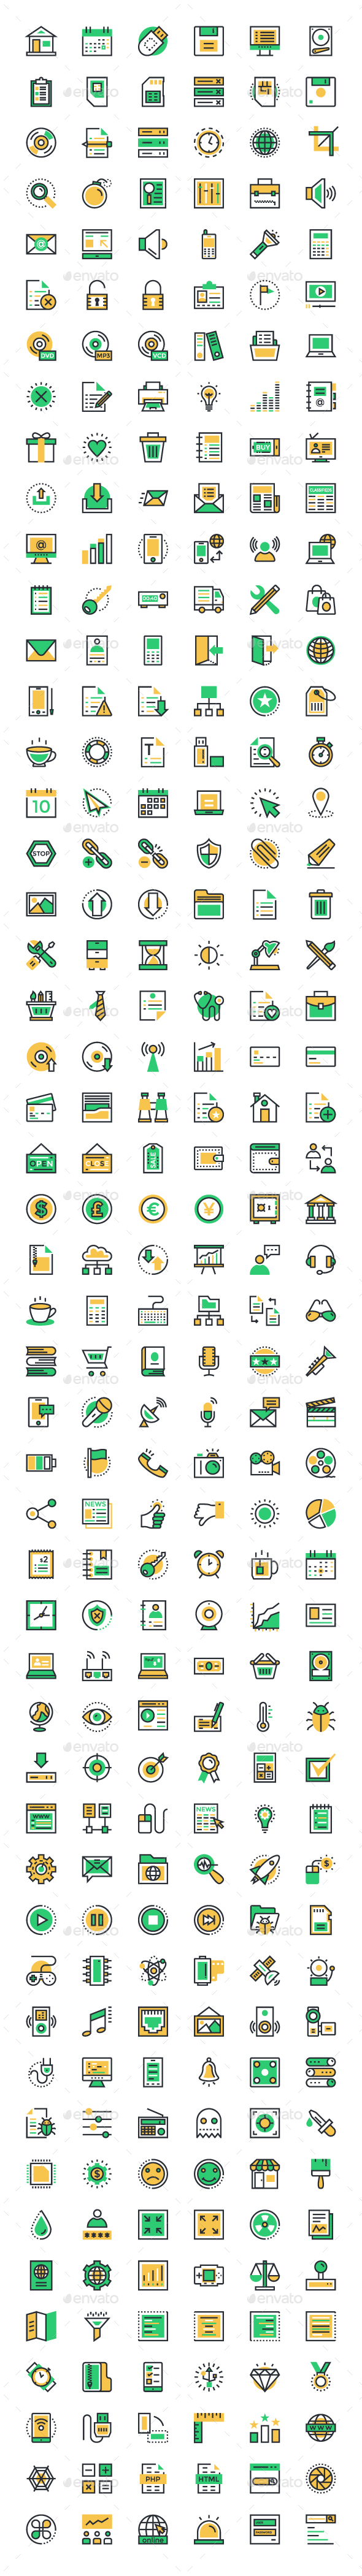 300 User Interface and Web Icons - Web Icons